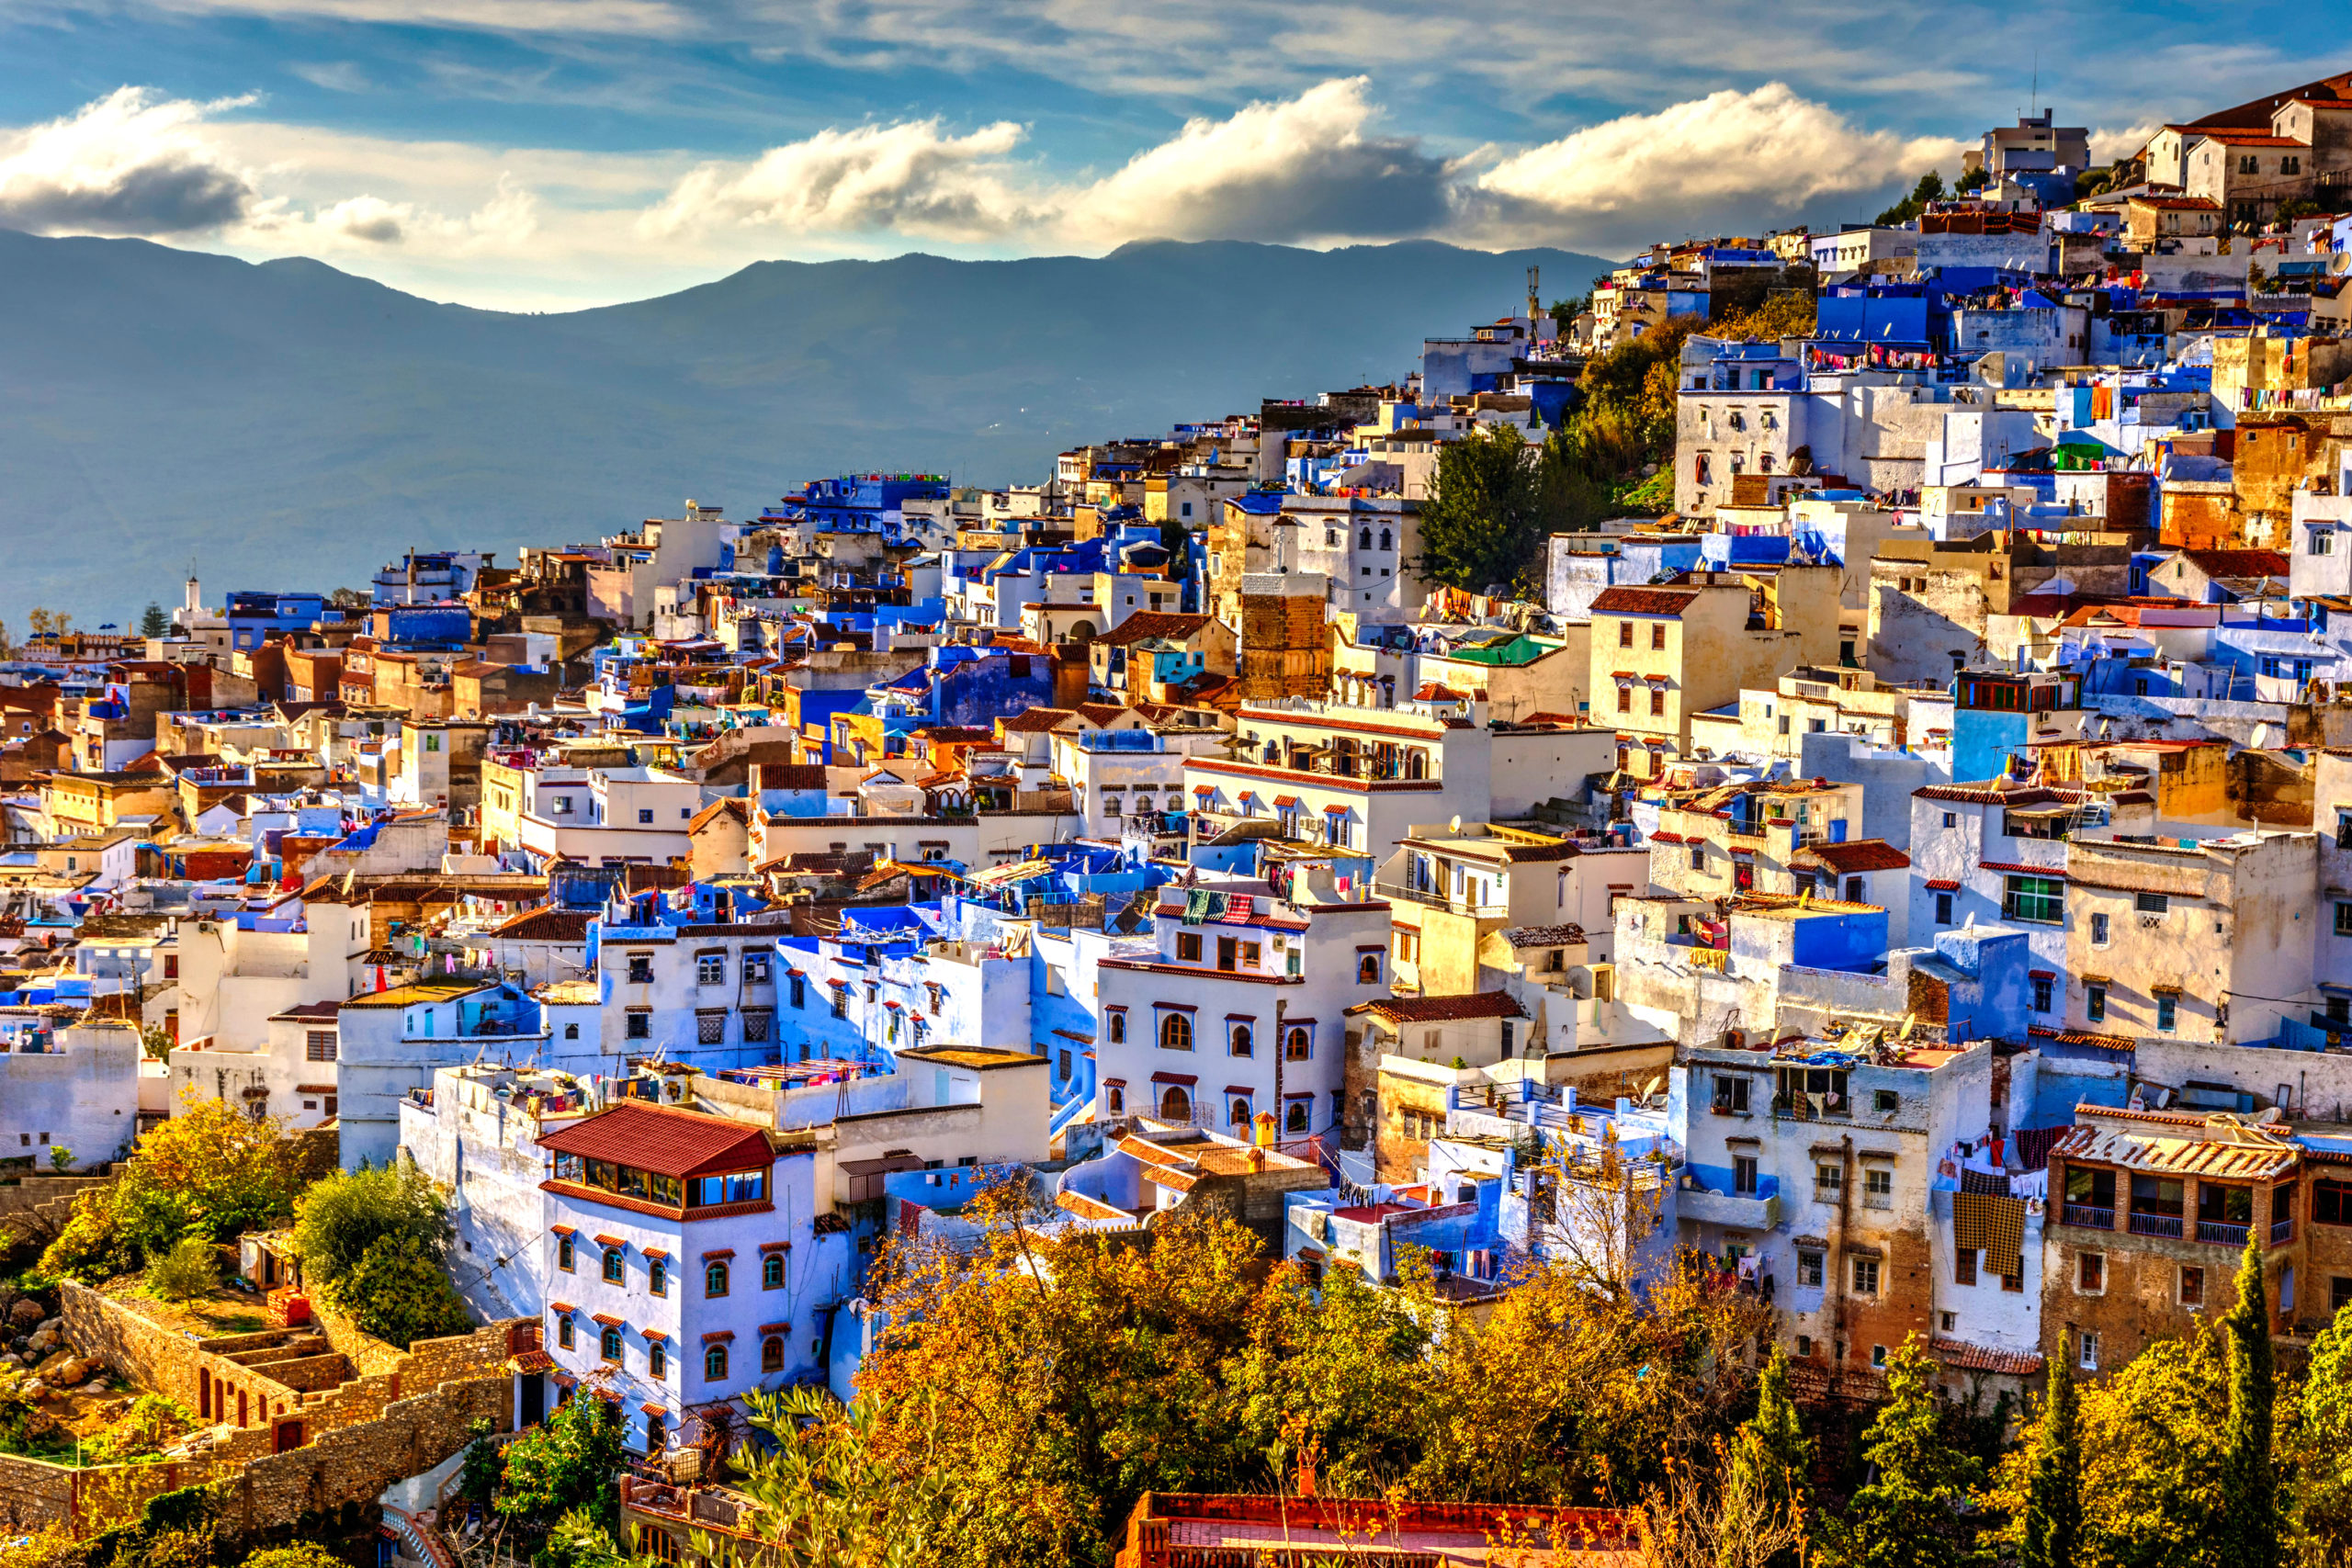 Planning a visit to Morocco in the future? Let these tips in Moroccan etiquette help you have the best time ever while your there.